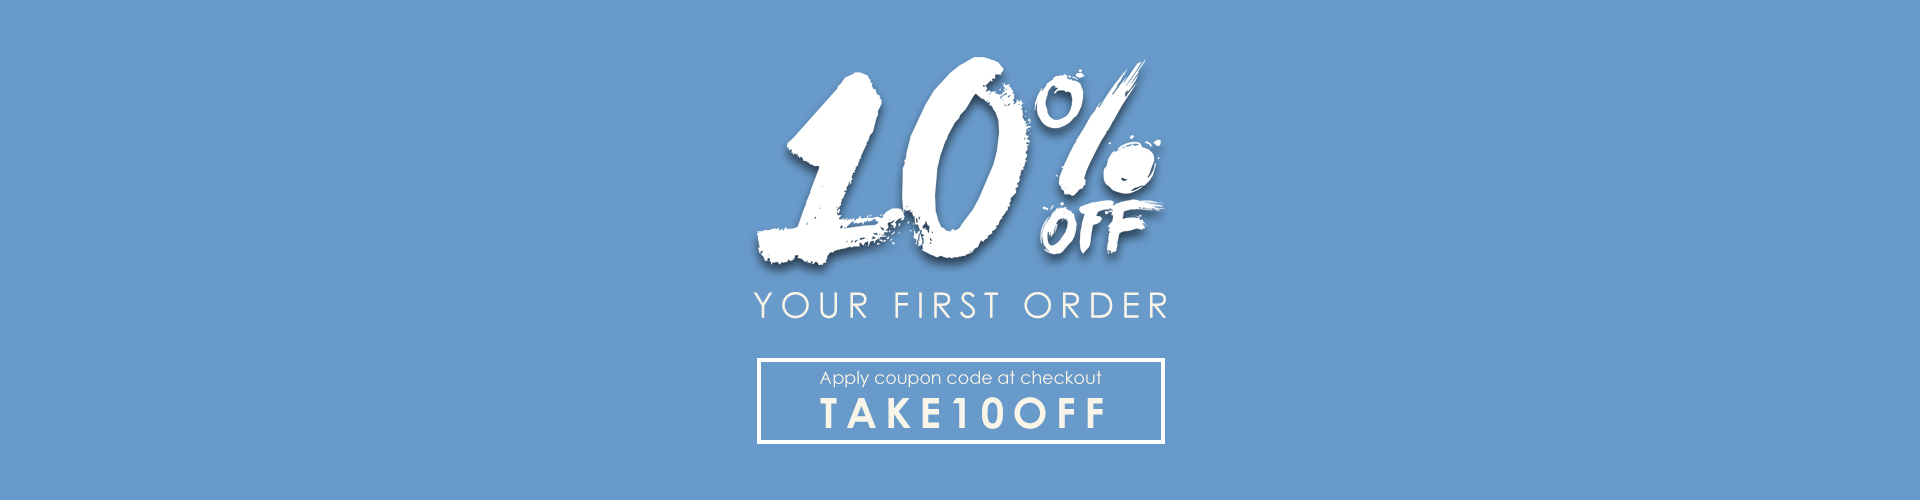 10% OFF Your First Order At BluntsShoes.com